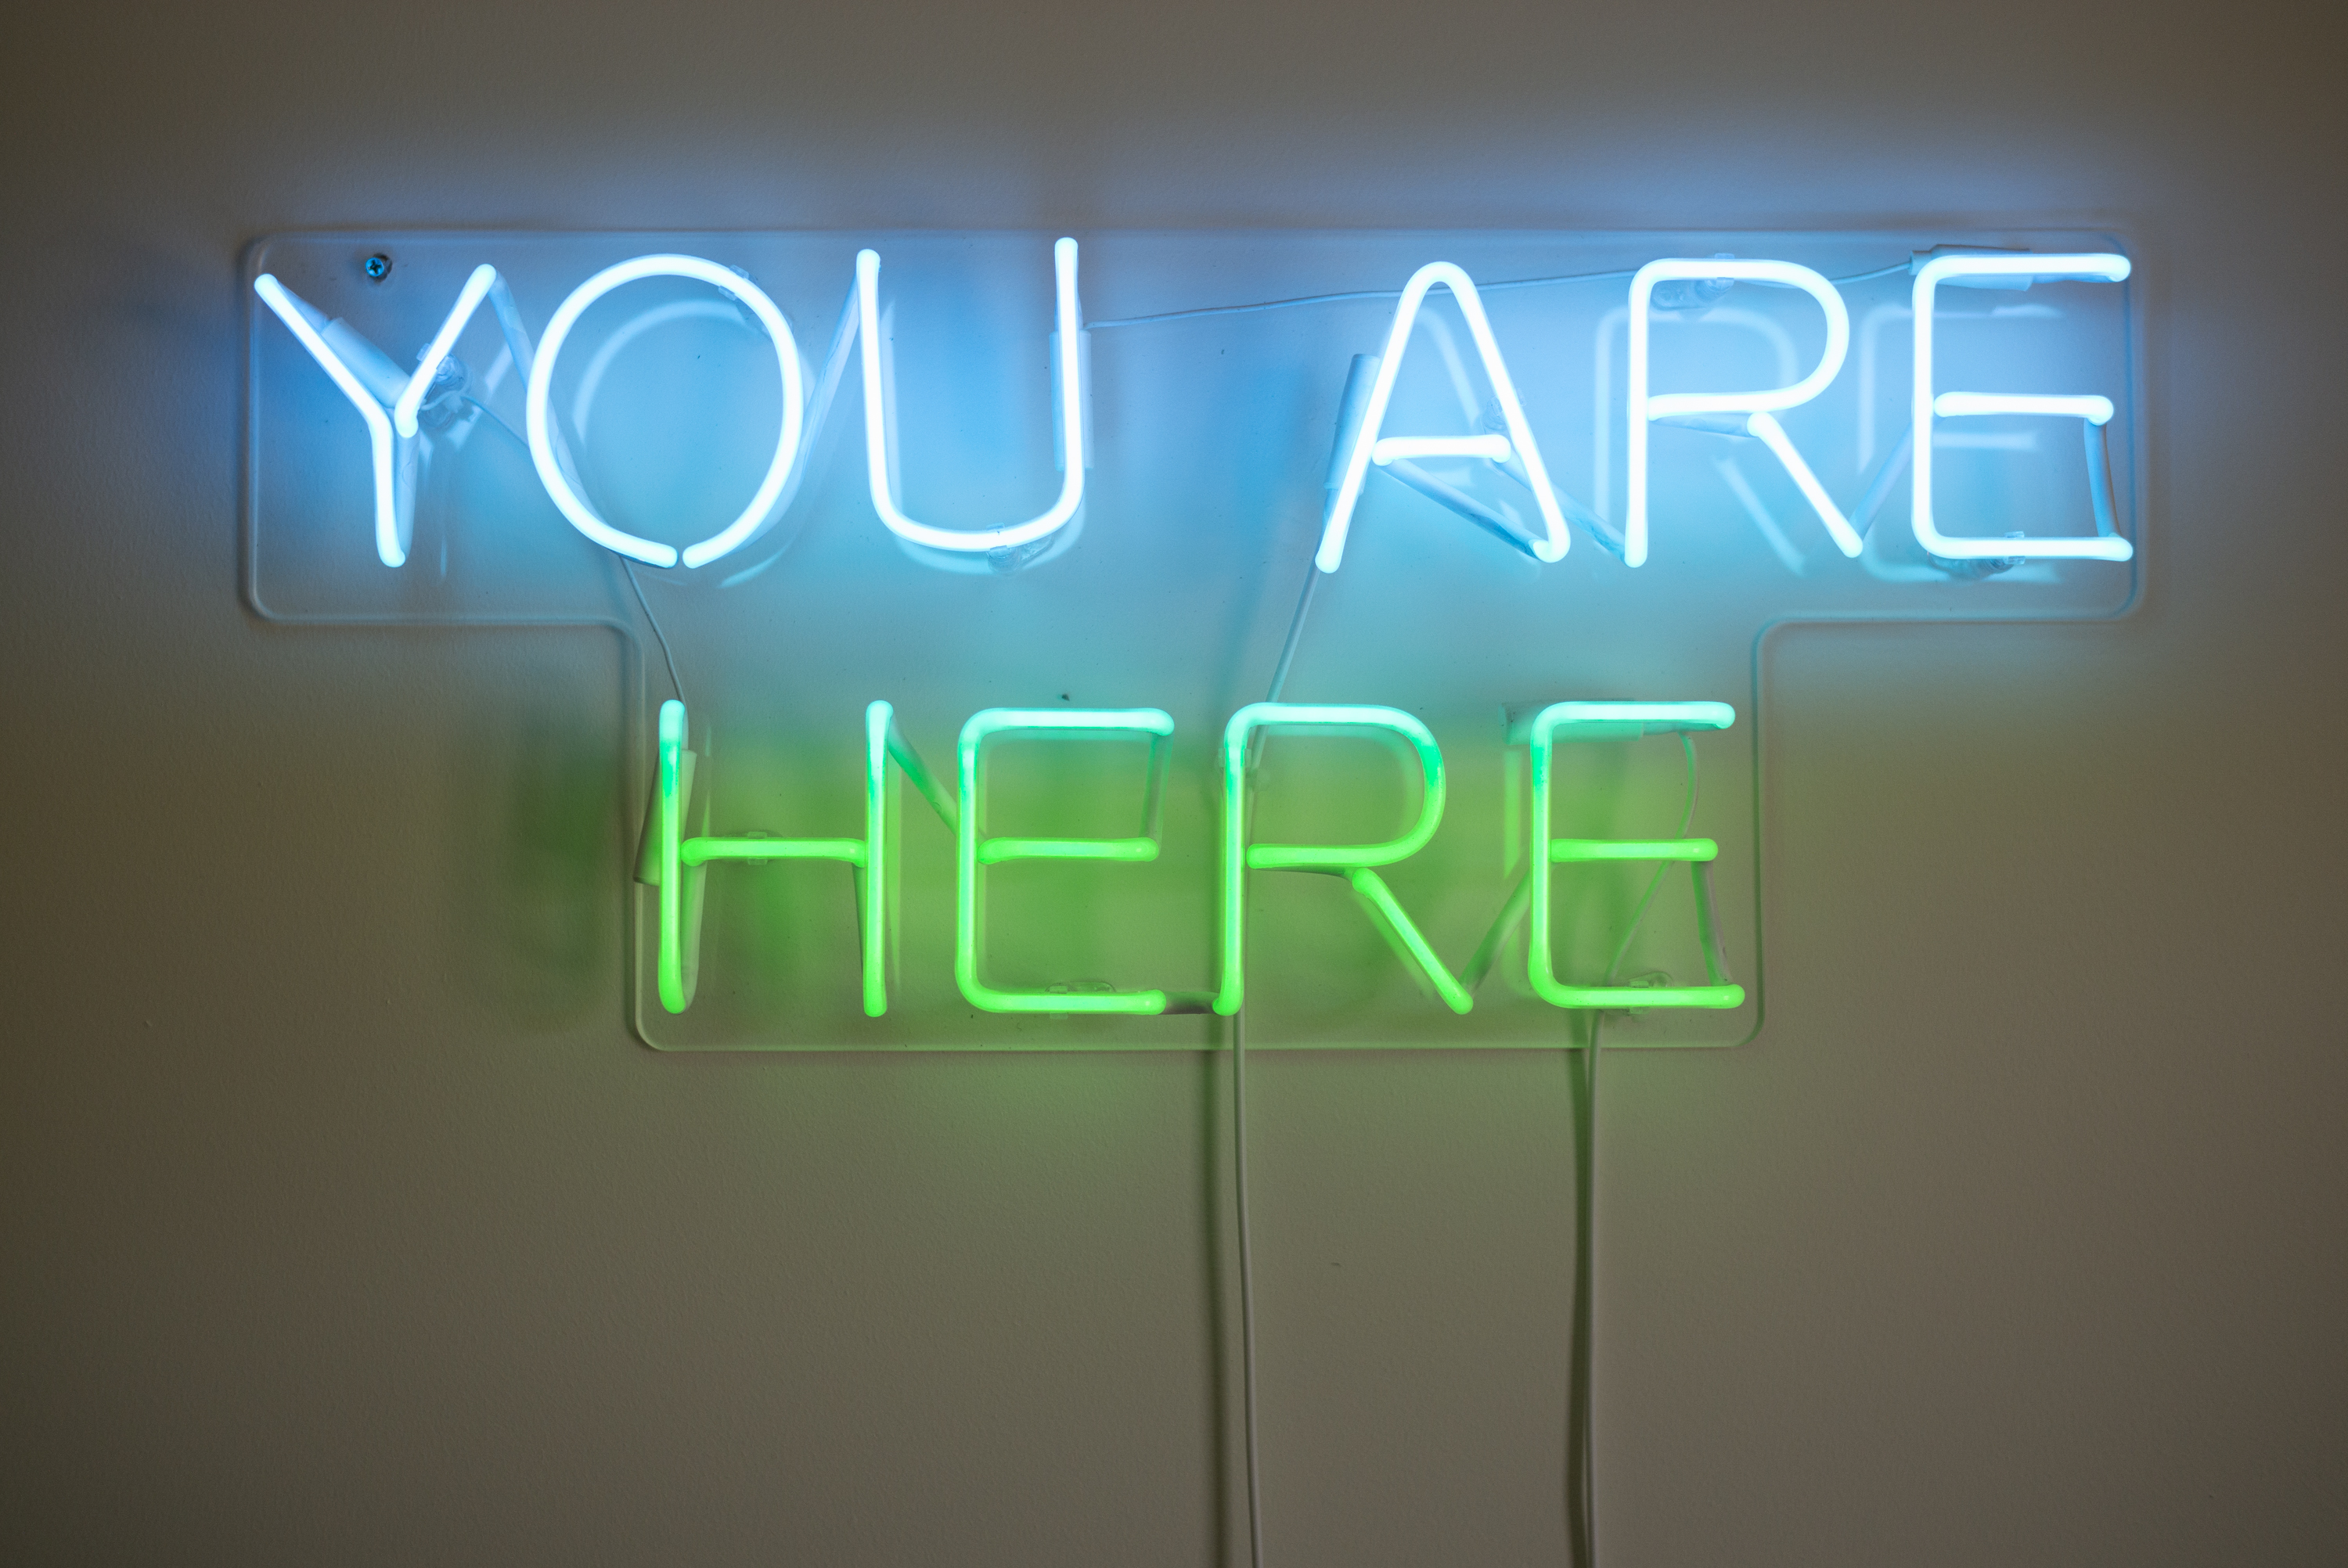 A neon blue and green sign you are here on the wall -pixeor.com